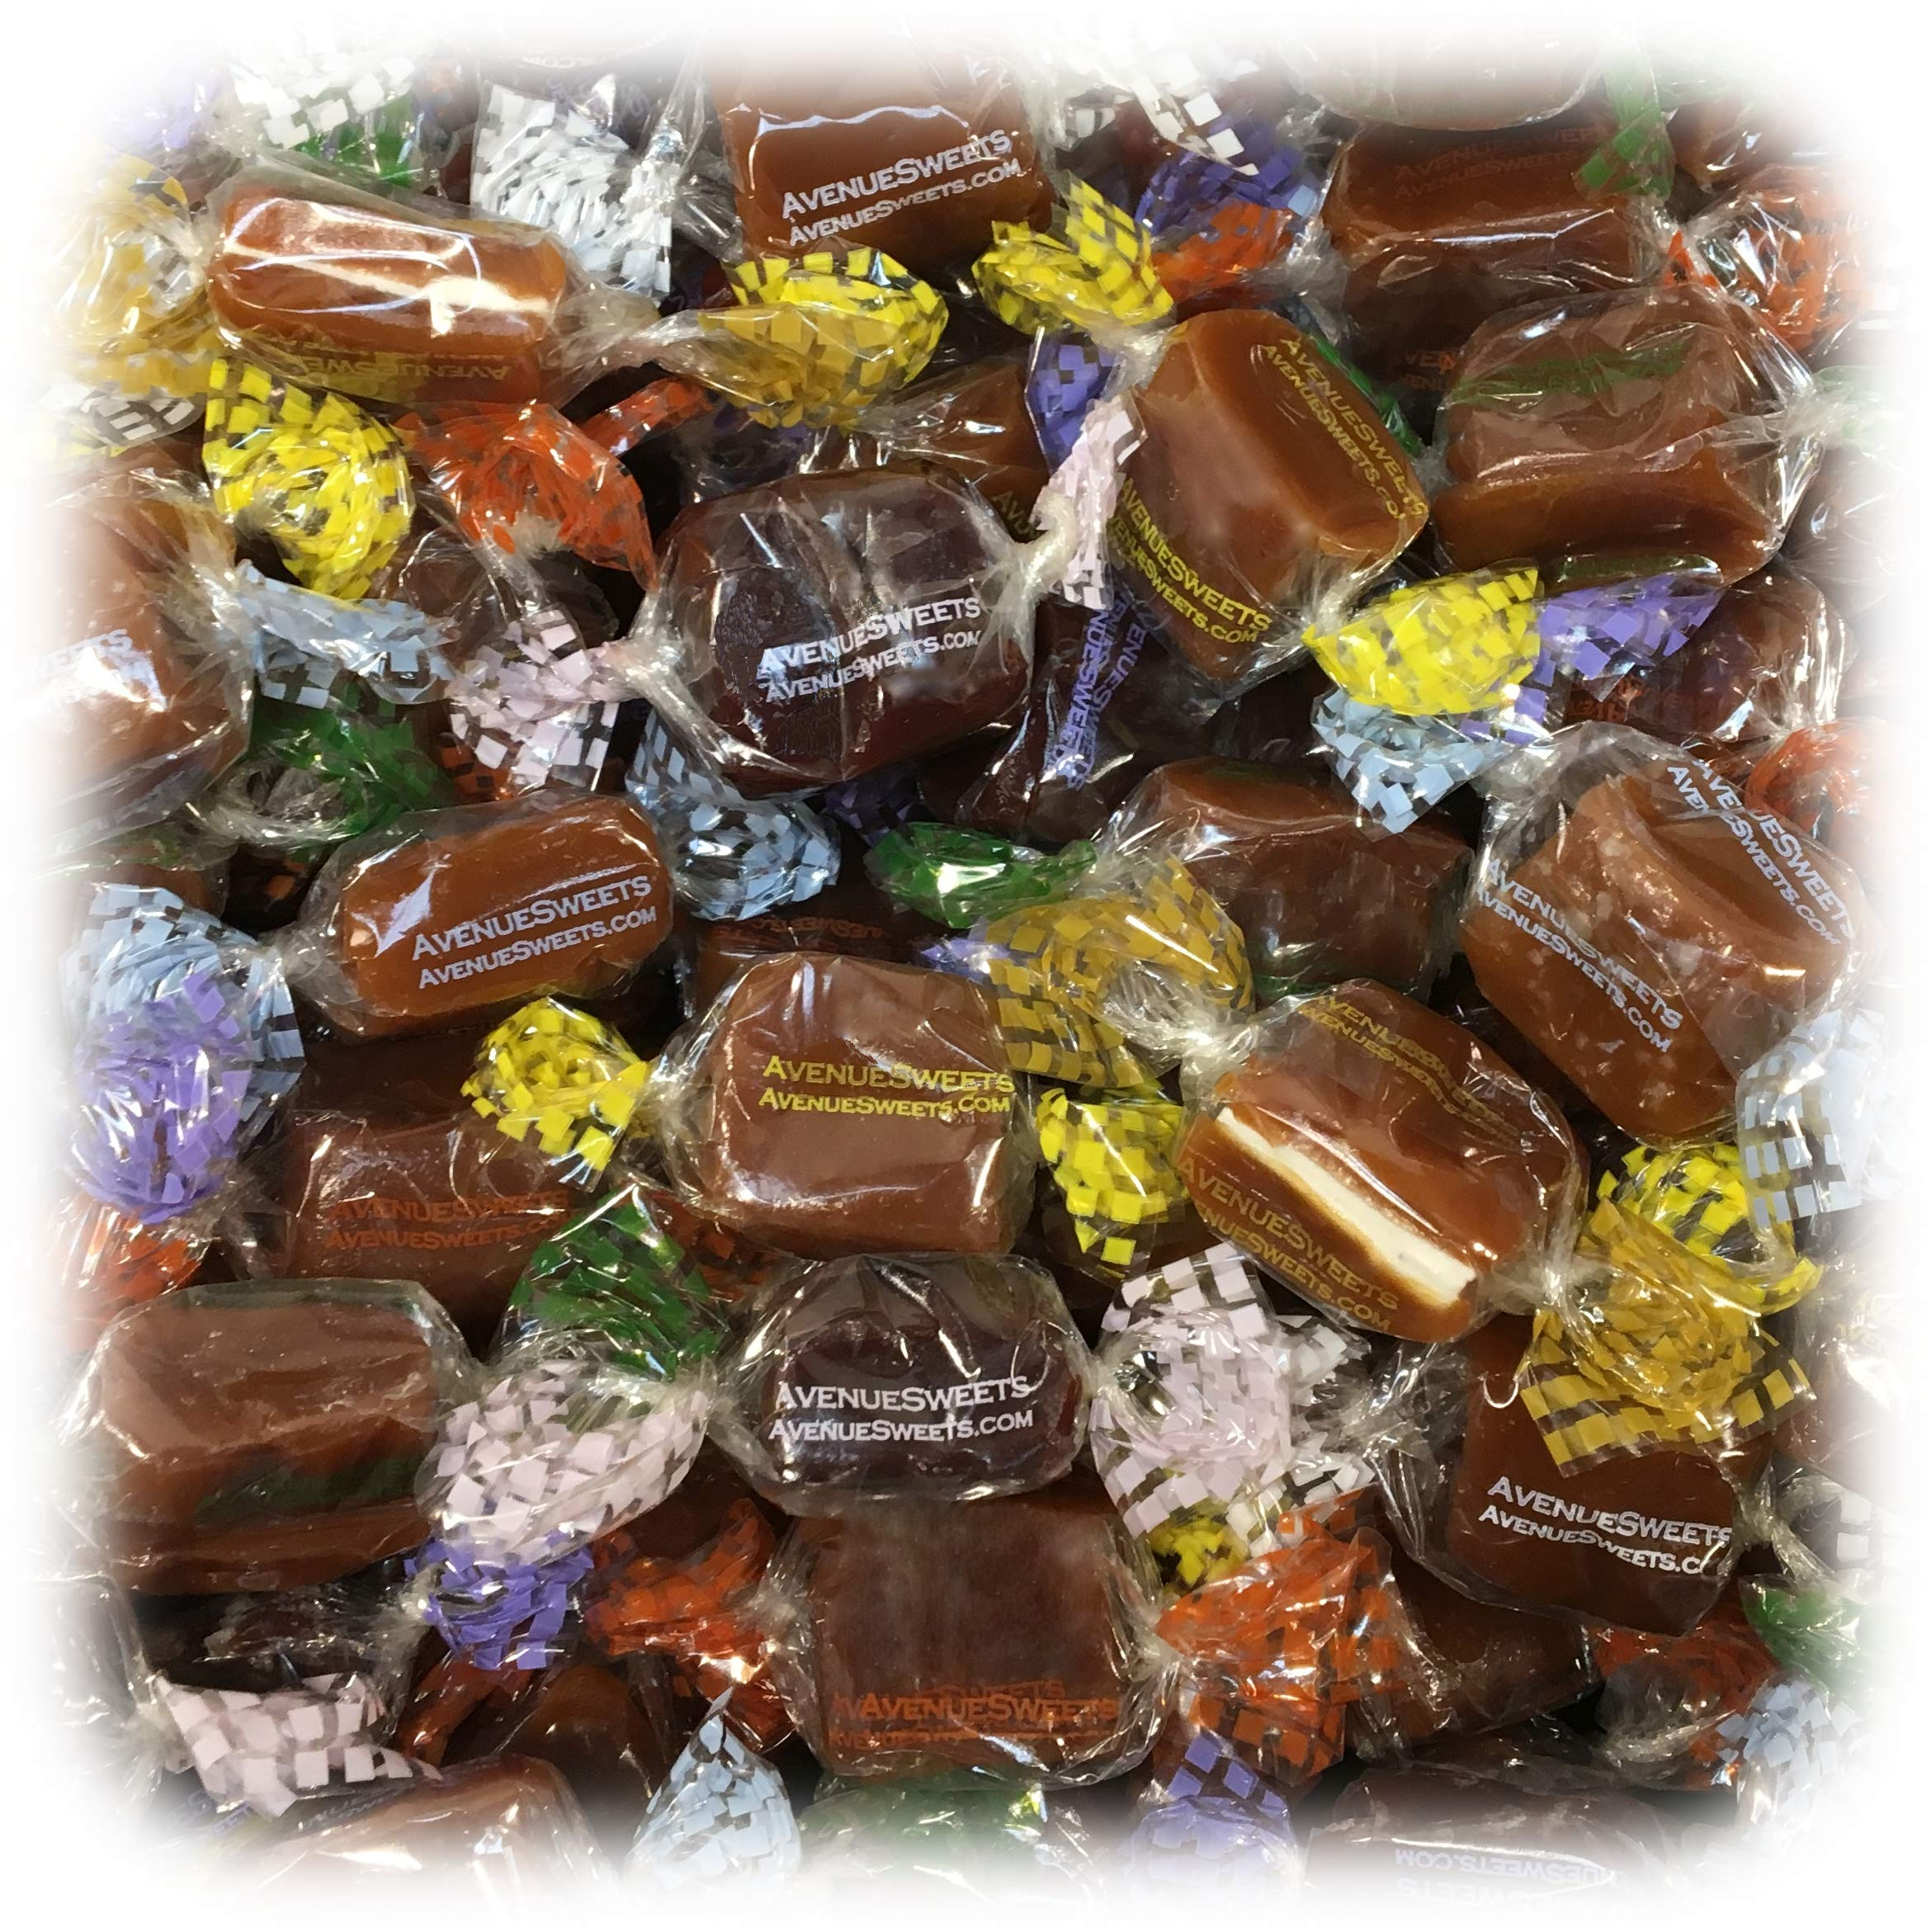 AvenueSweets - Handcrafted Individually Wrapped Soft Caramels - 1 lb Box - Customize Your Flavors by AvenueSweets